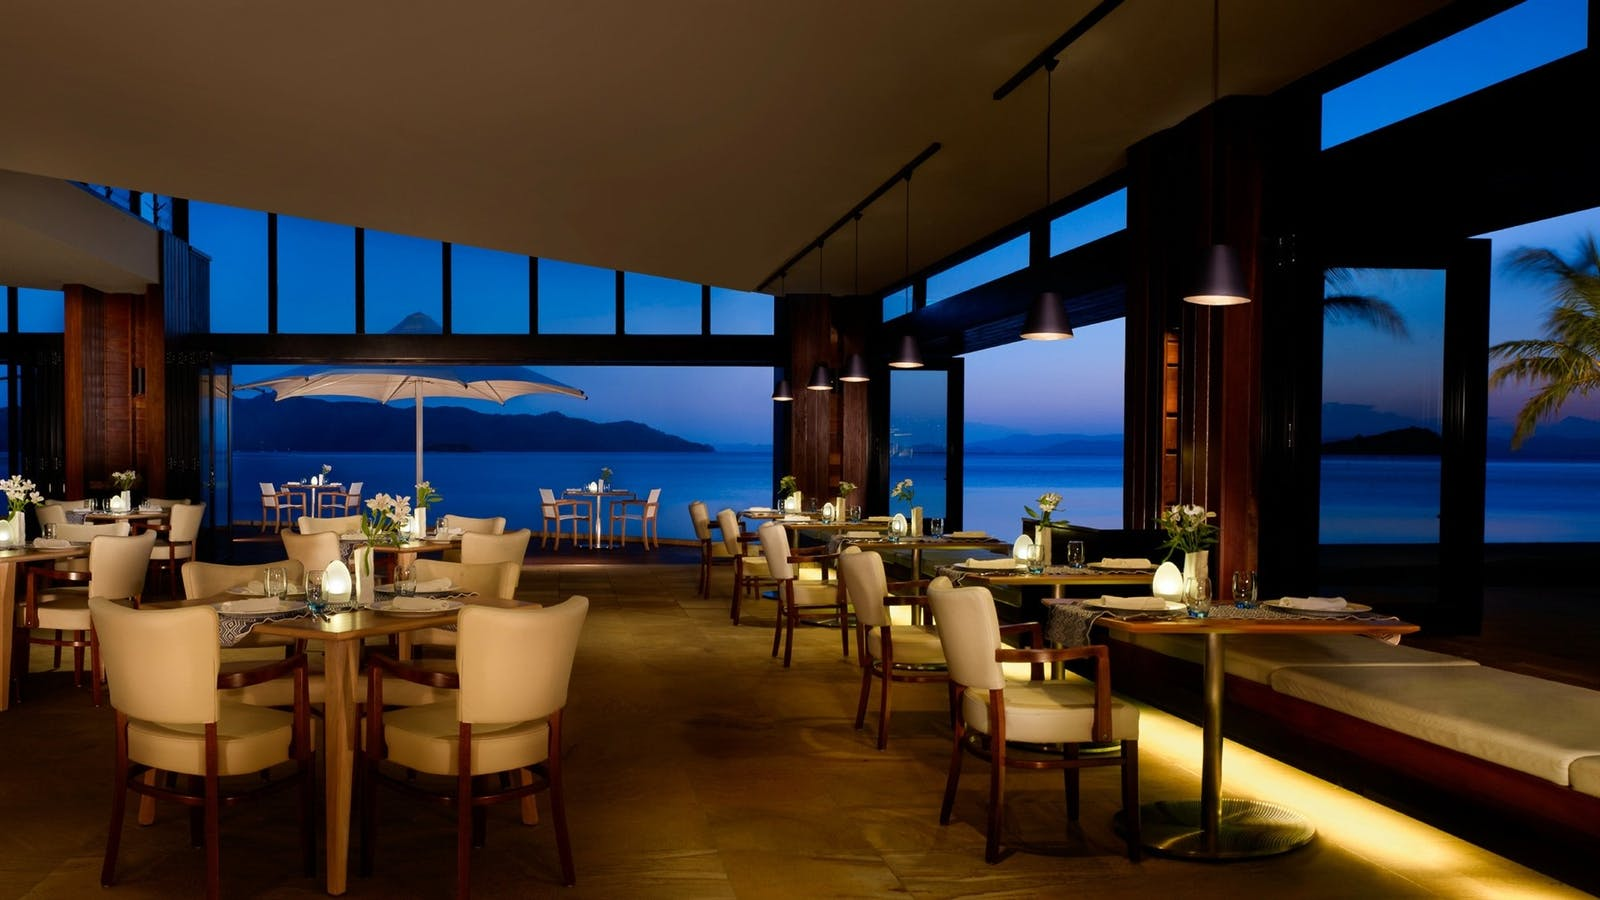 Dining at InterContinental Hayman Island Resort, Great Barrier Reef Islands